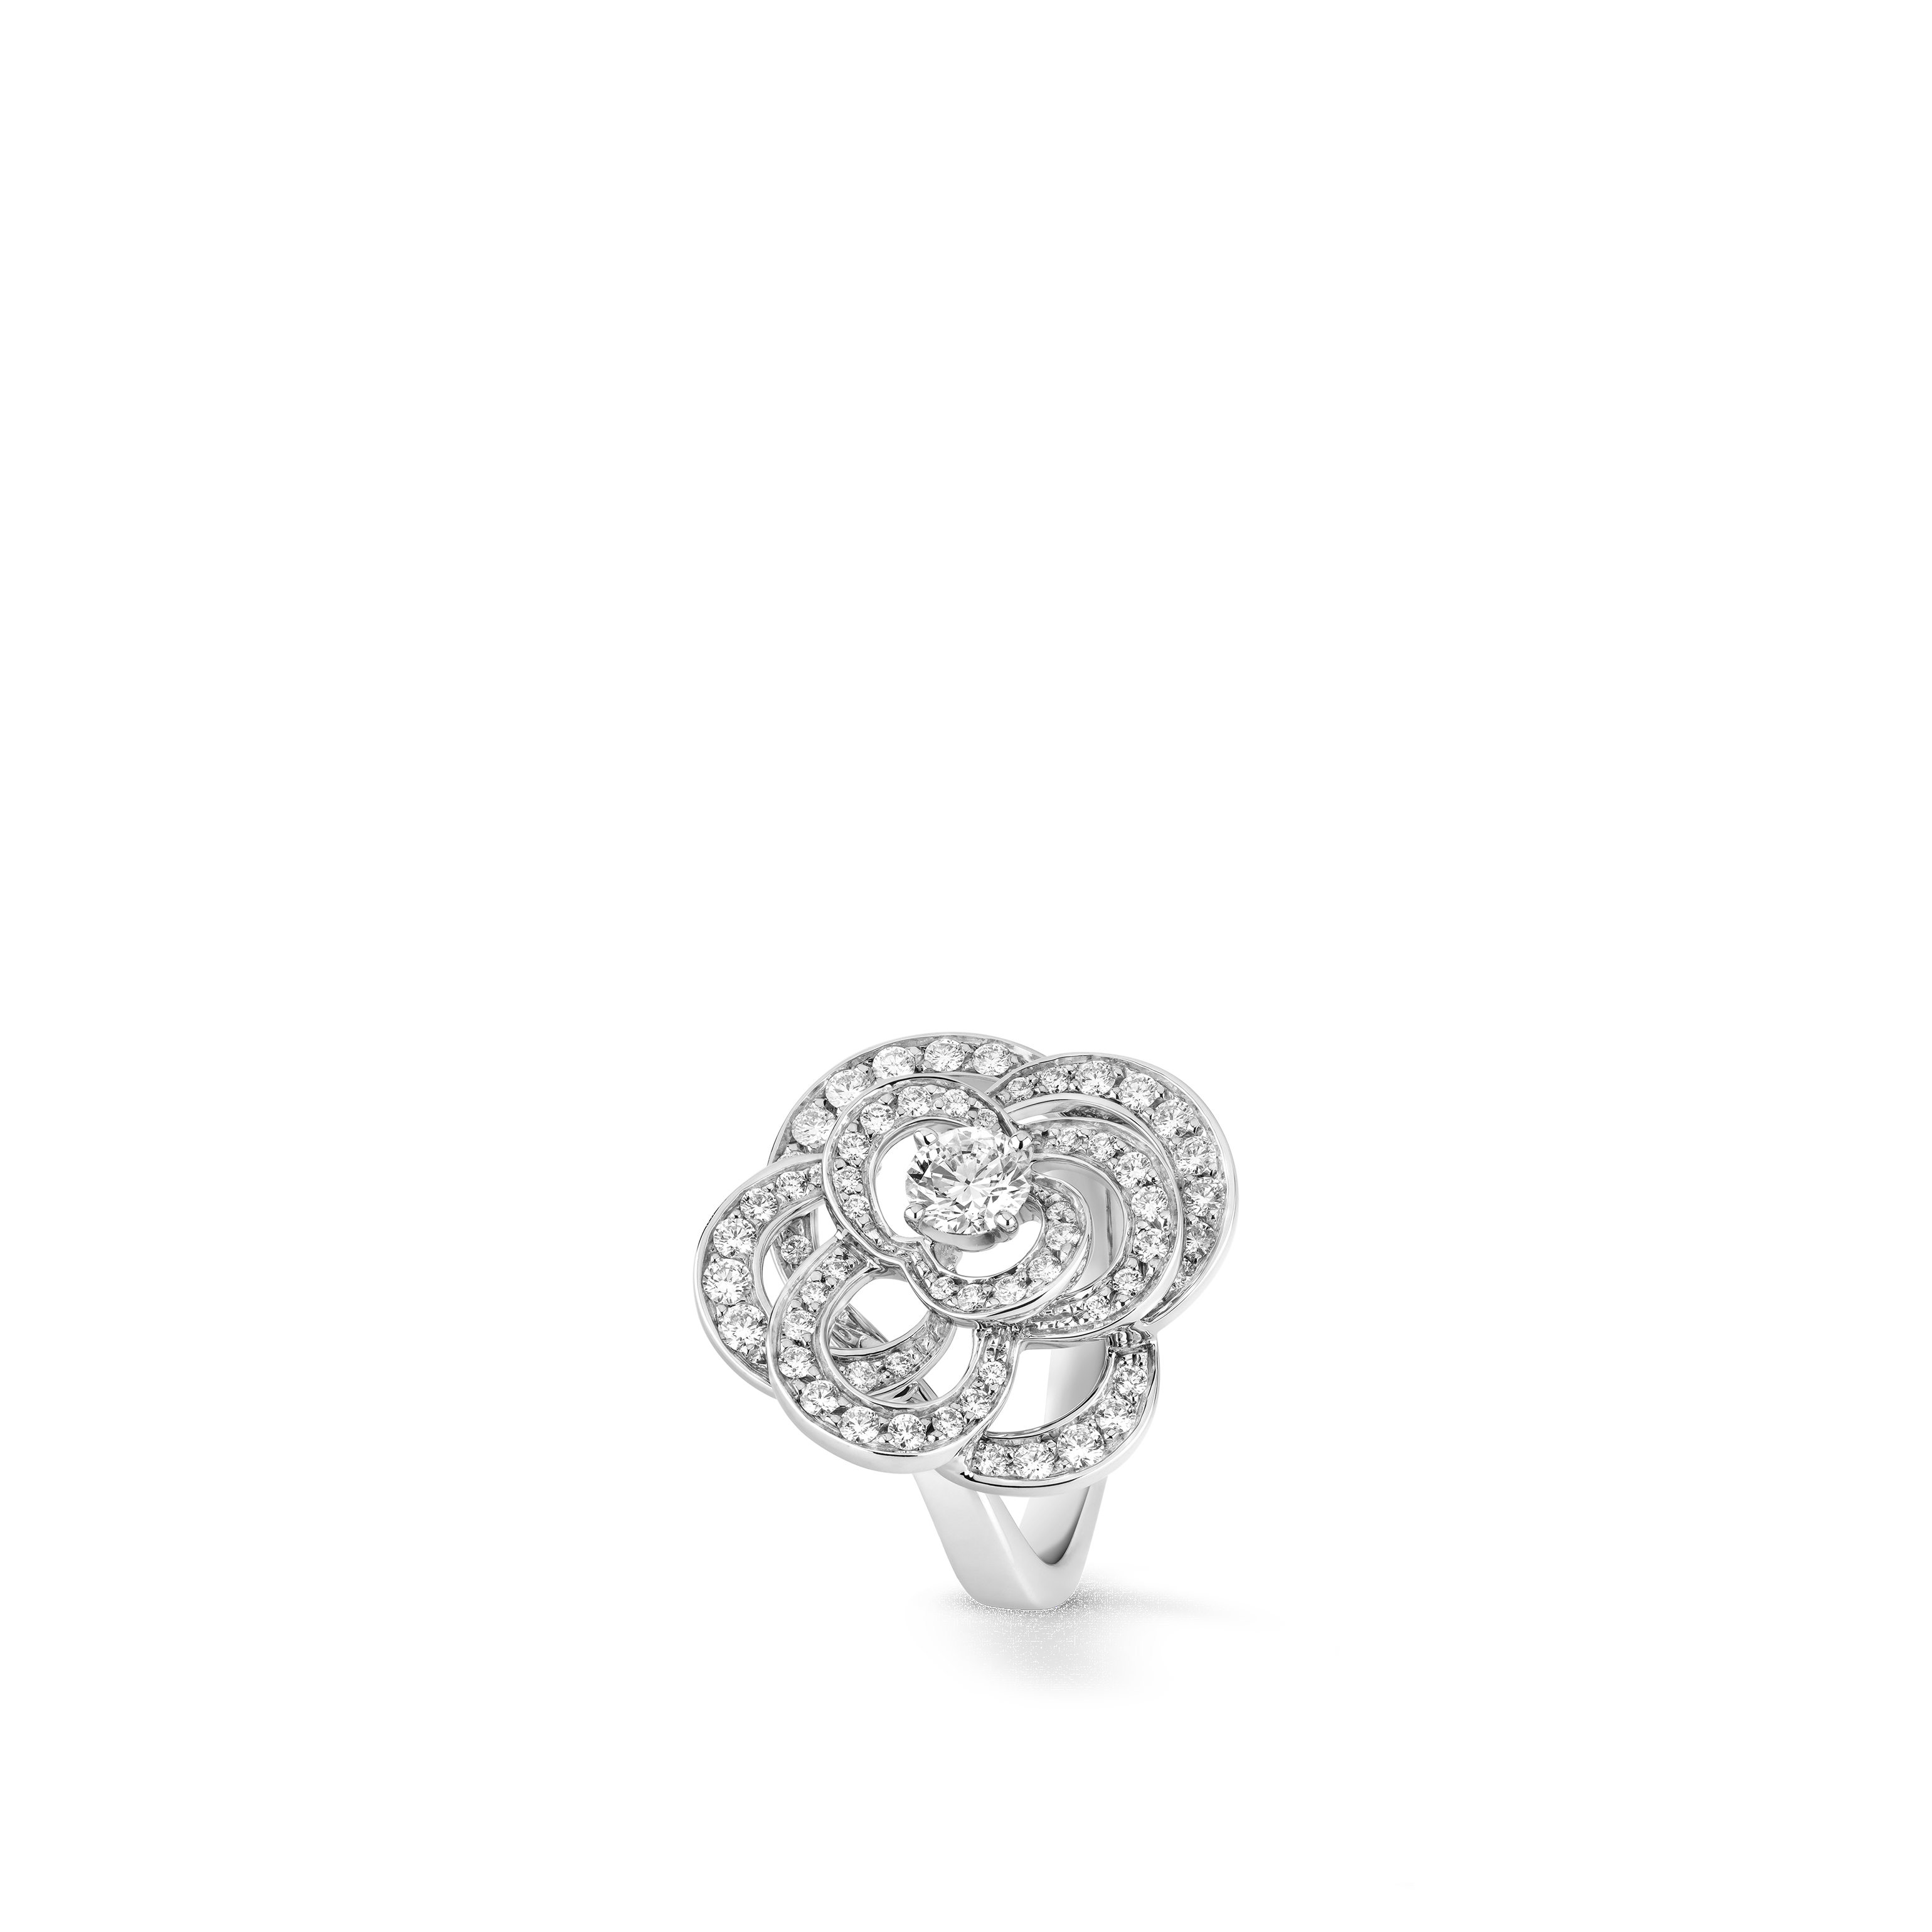 Fil de Camélia ring - Large version, 18K white gold, diamonds - CHANEL - Default view - see standard sized version